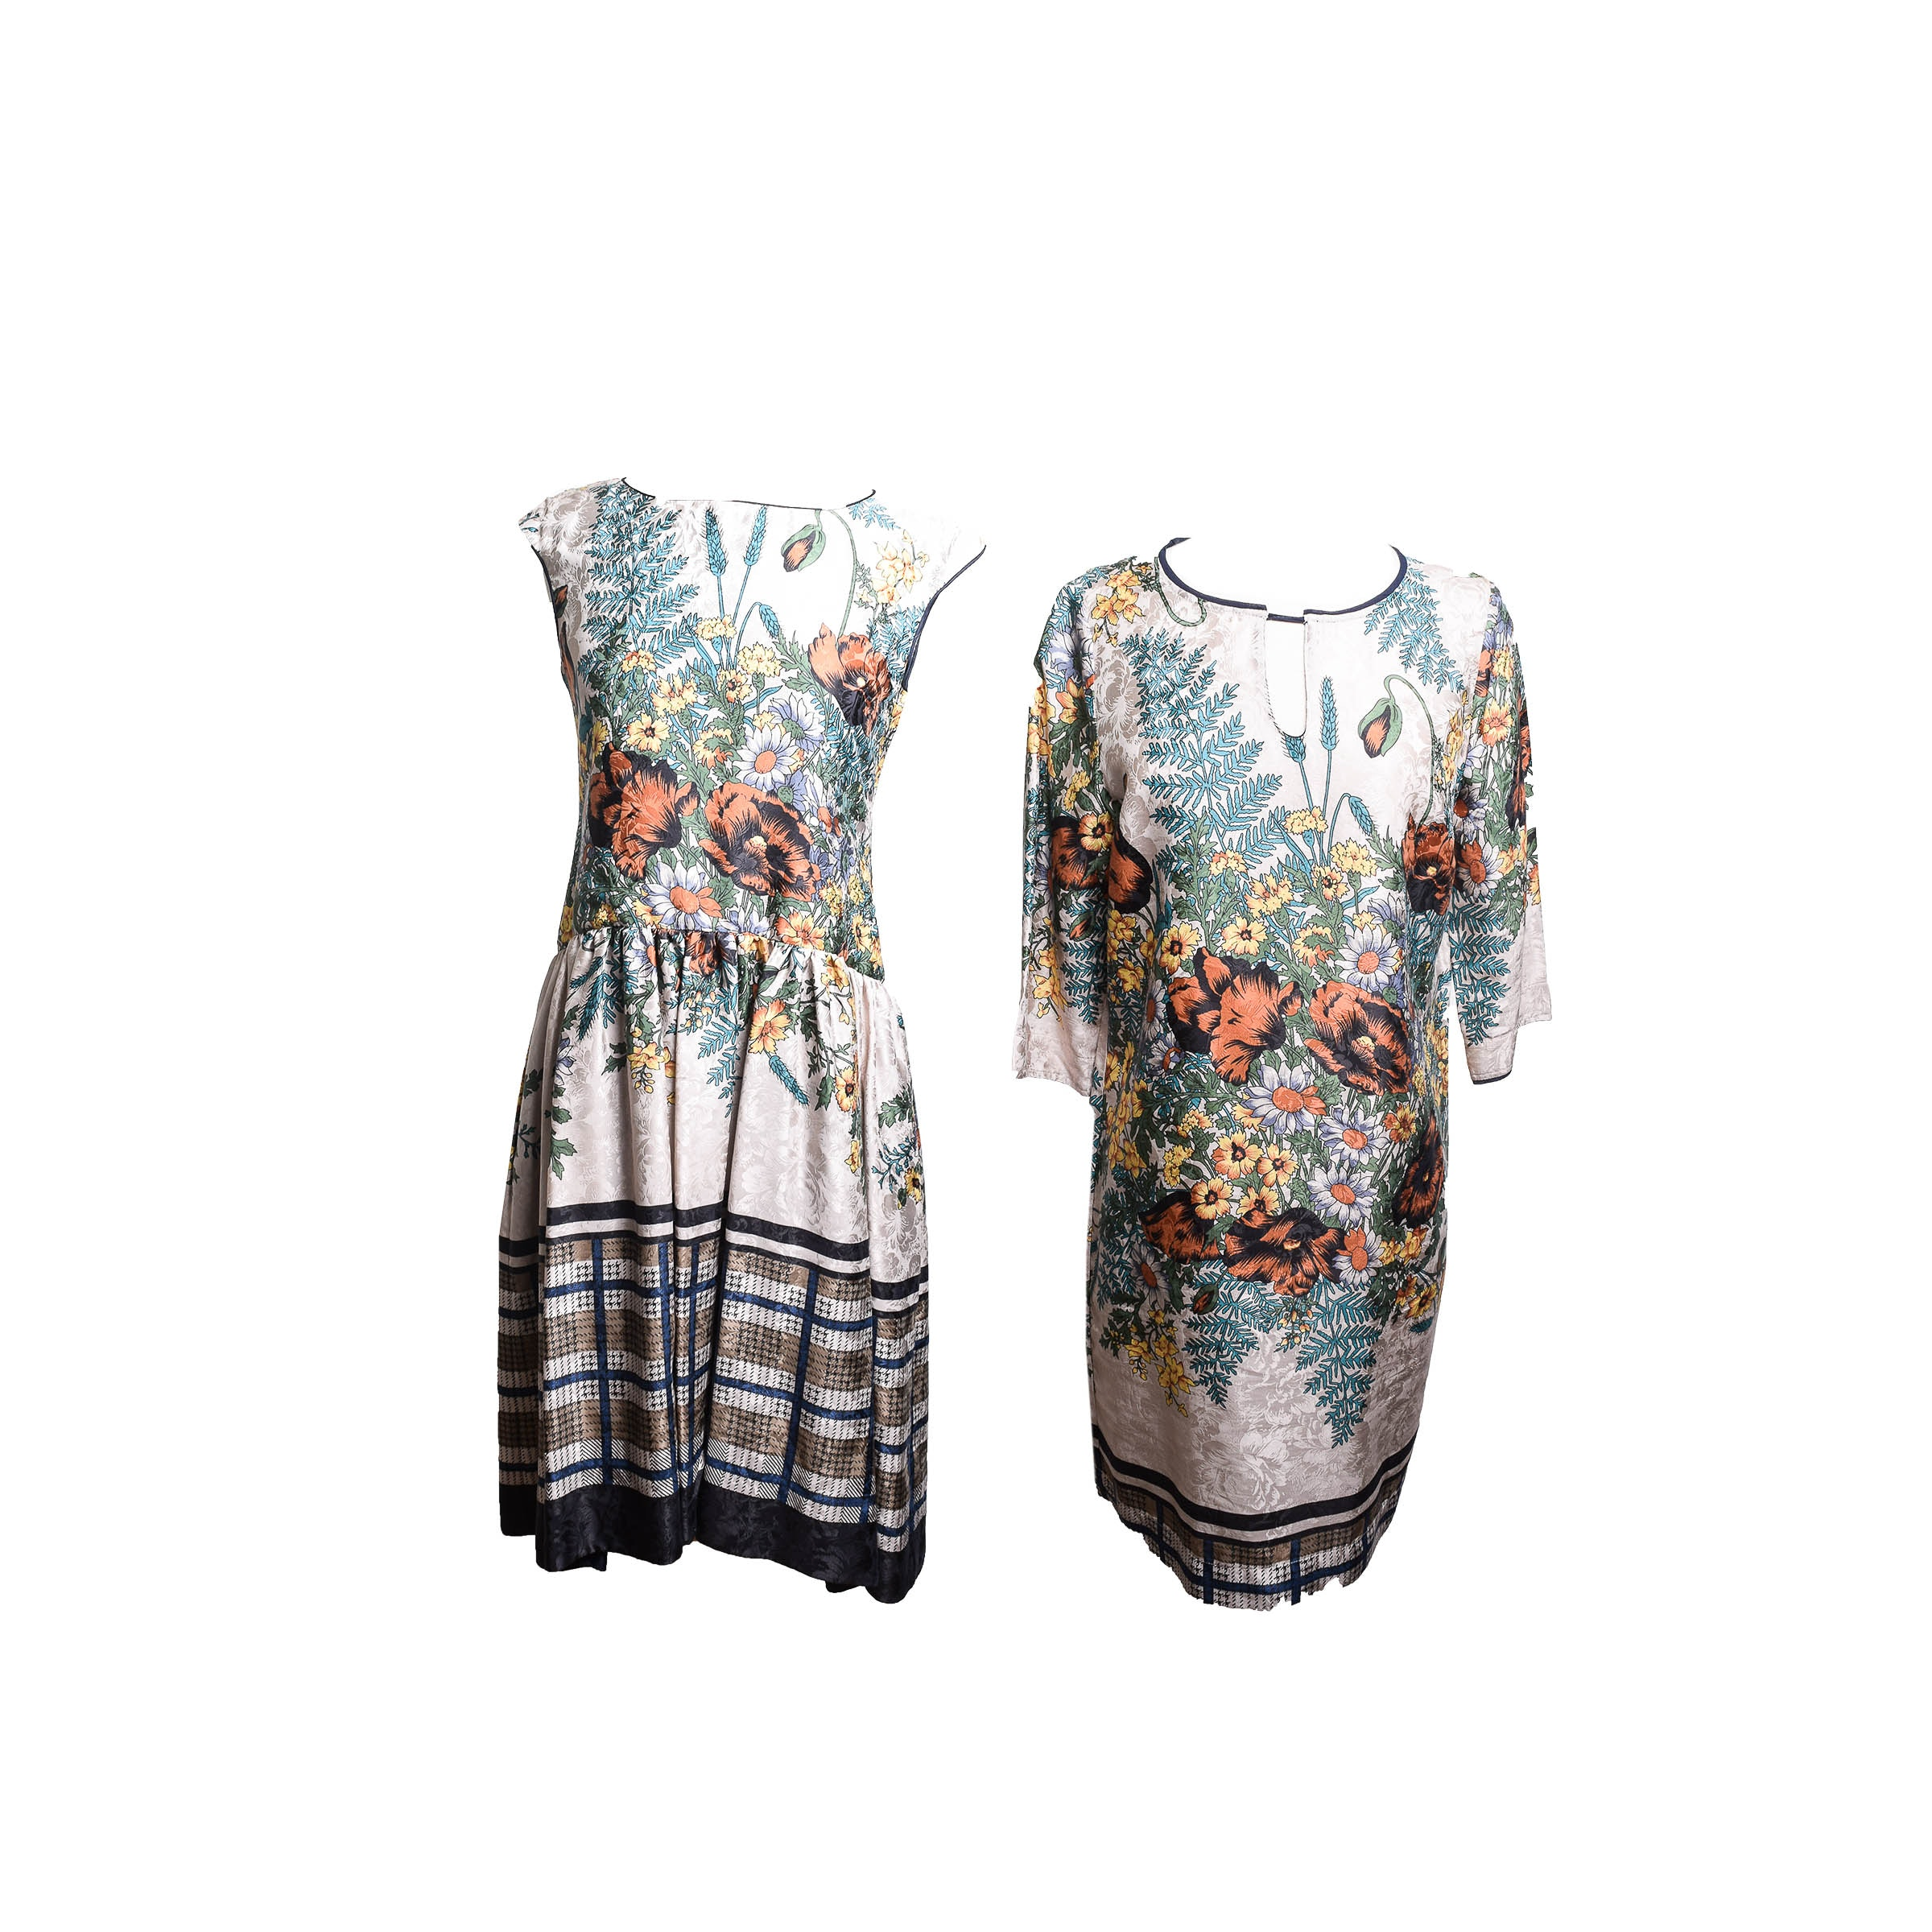 Pair of Printed Trelise Cooper Dresses